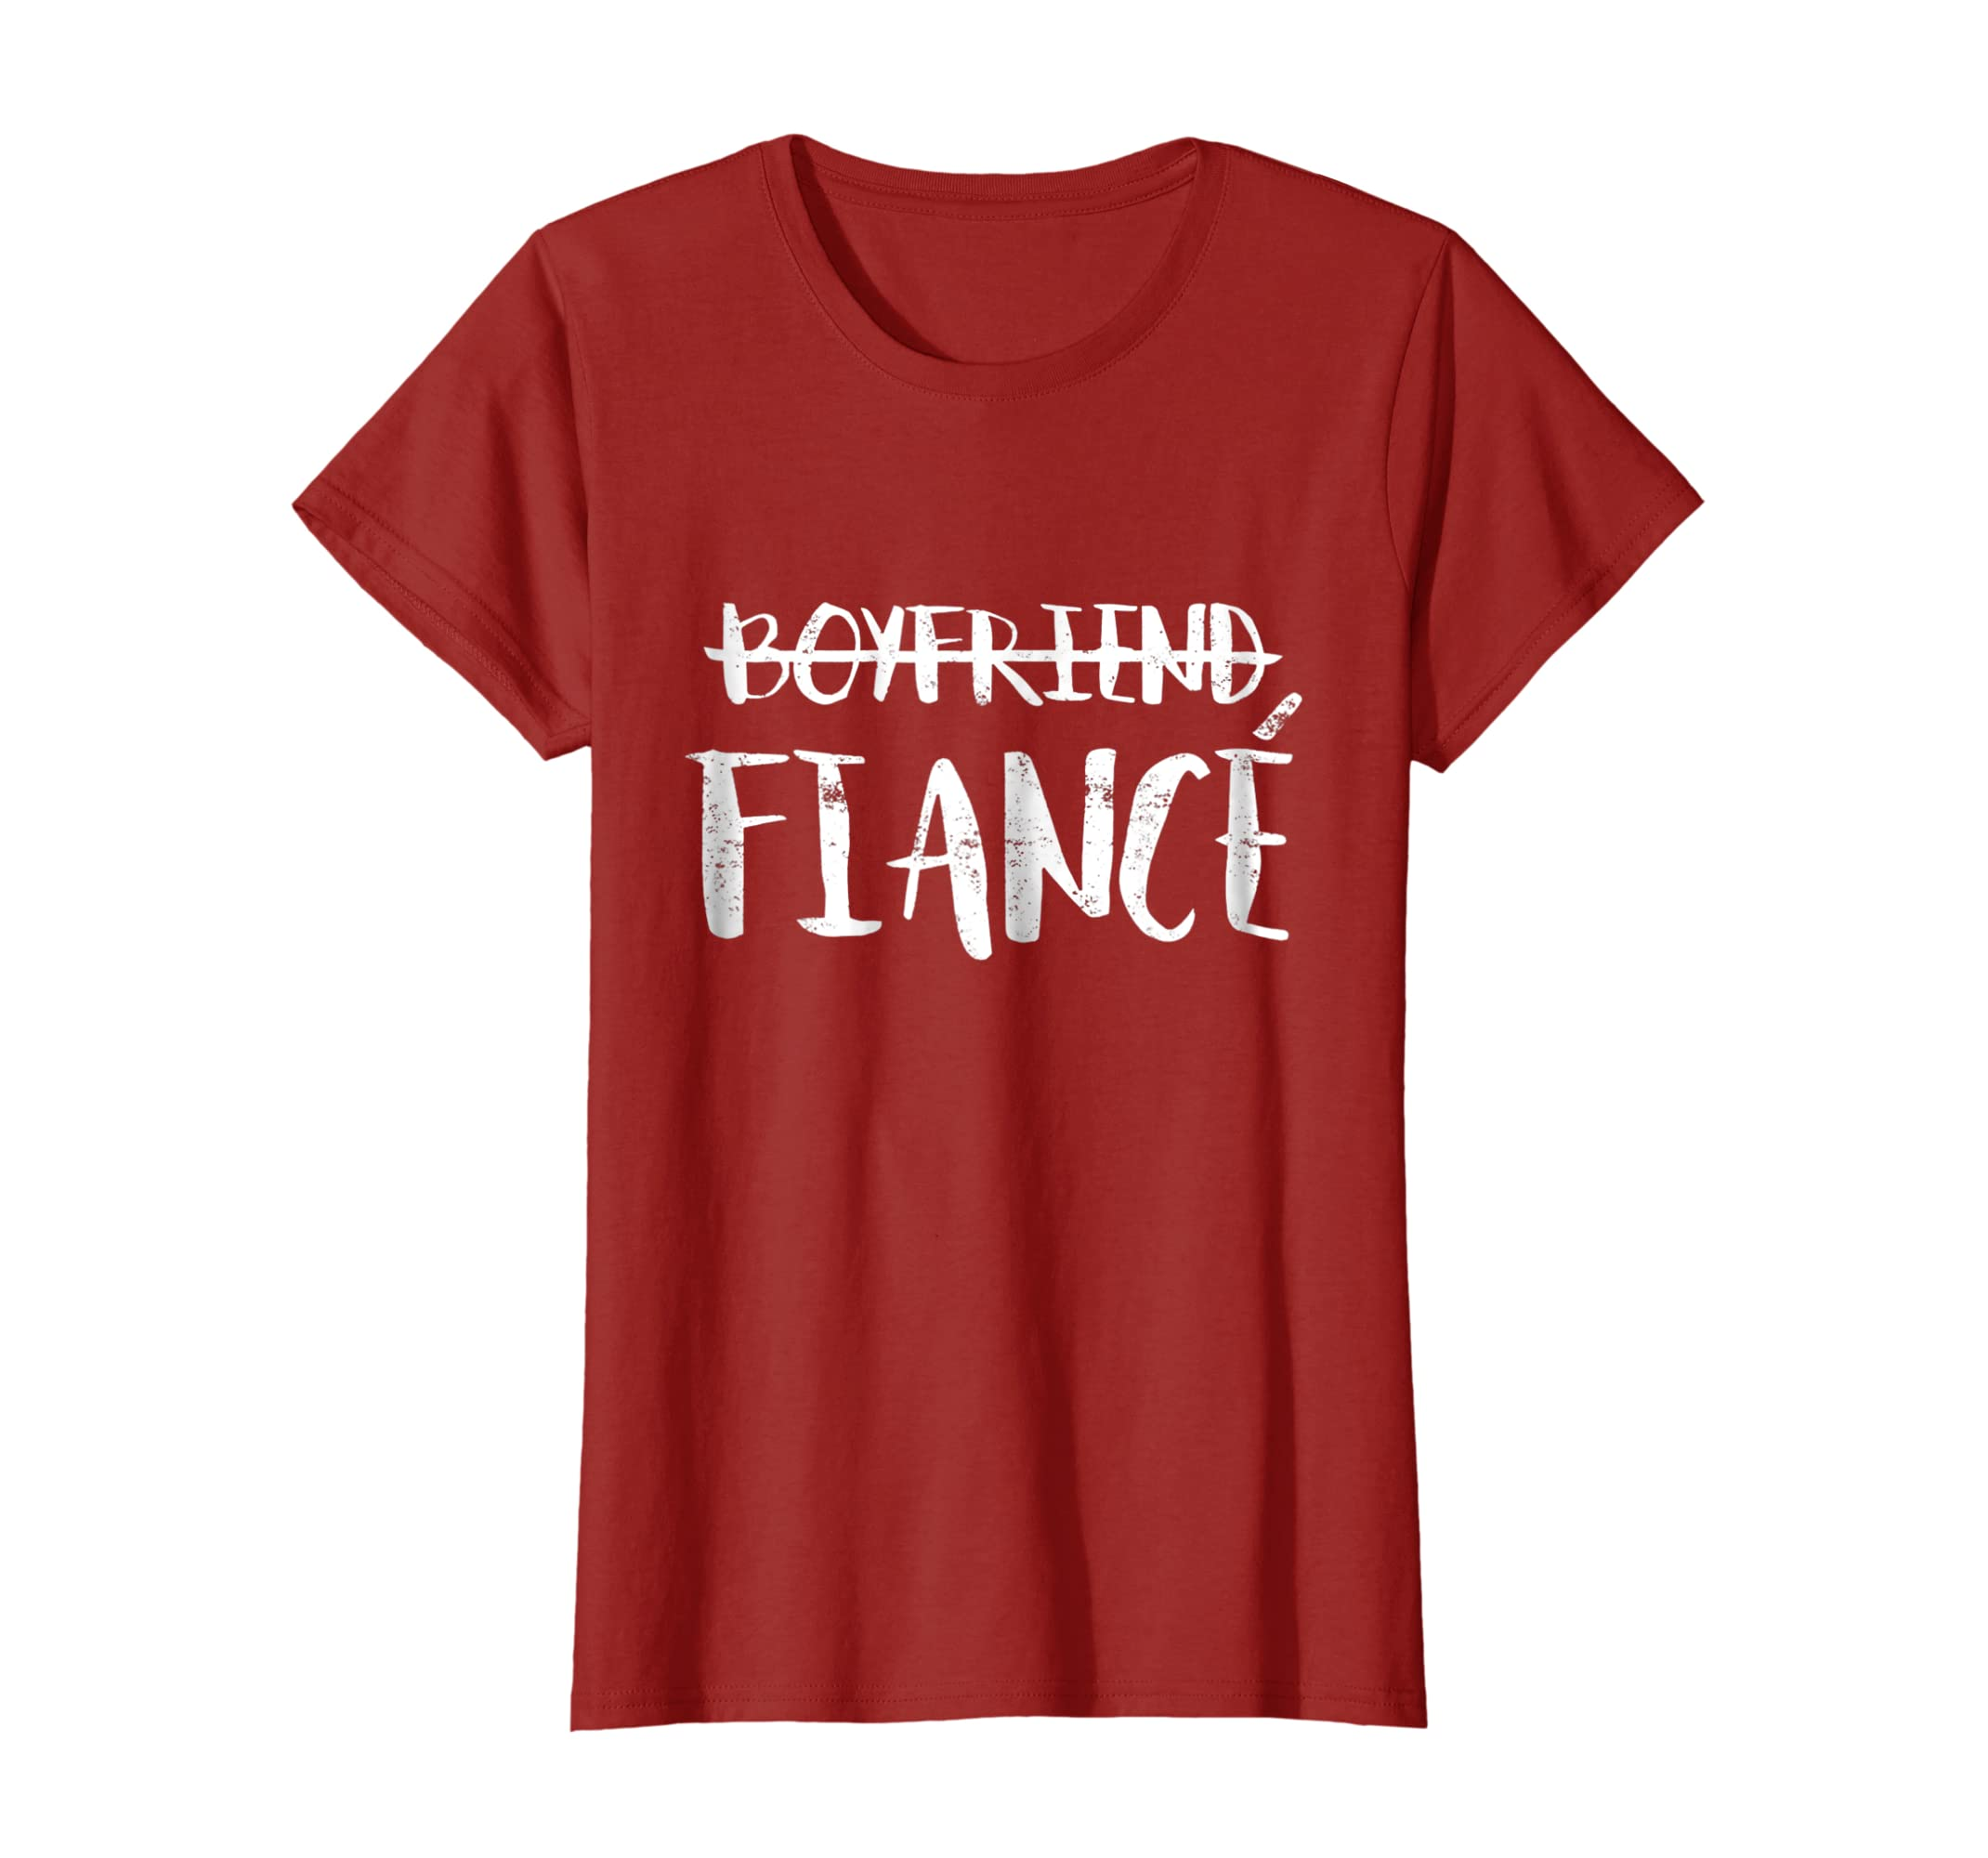 Gift For Fiance On Wedding Day: Mens Engagement Boyfriend Fiance T Shirt Wedding Day Gifts